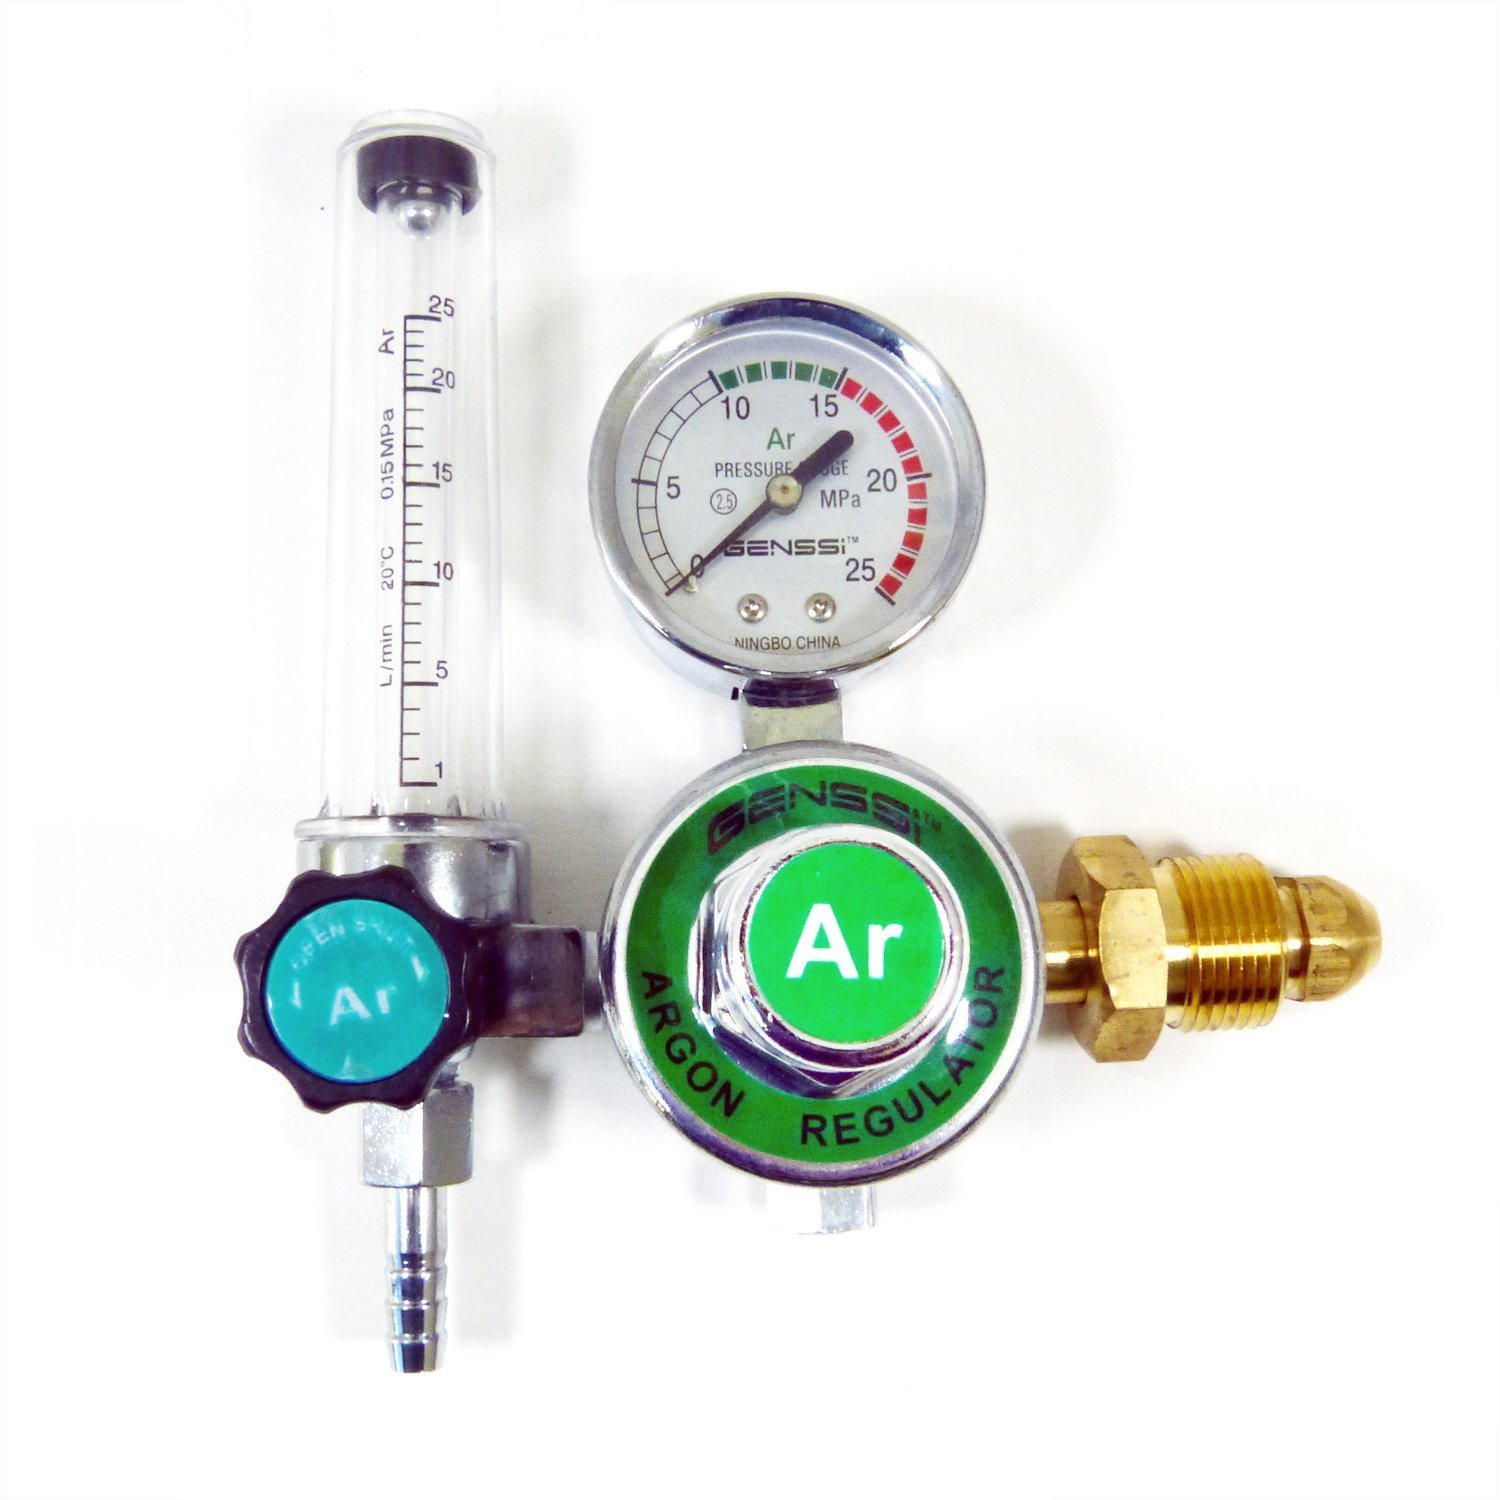 Argon CO2 Mig Tig Flowmeter Regulator Welding Regulator Gauge Gas Welder GENSSI ARGON-REG